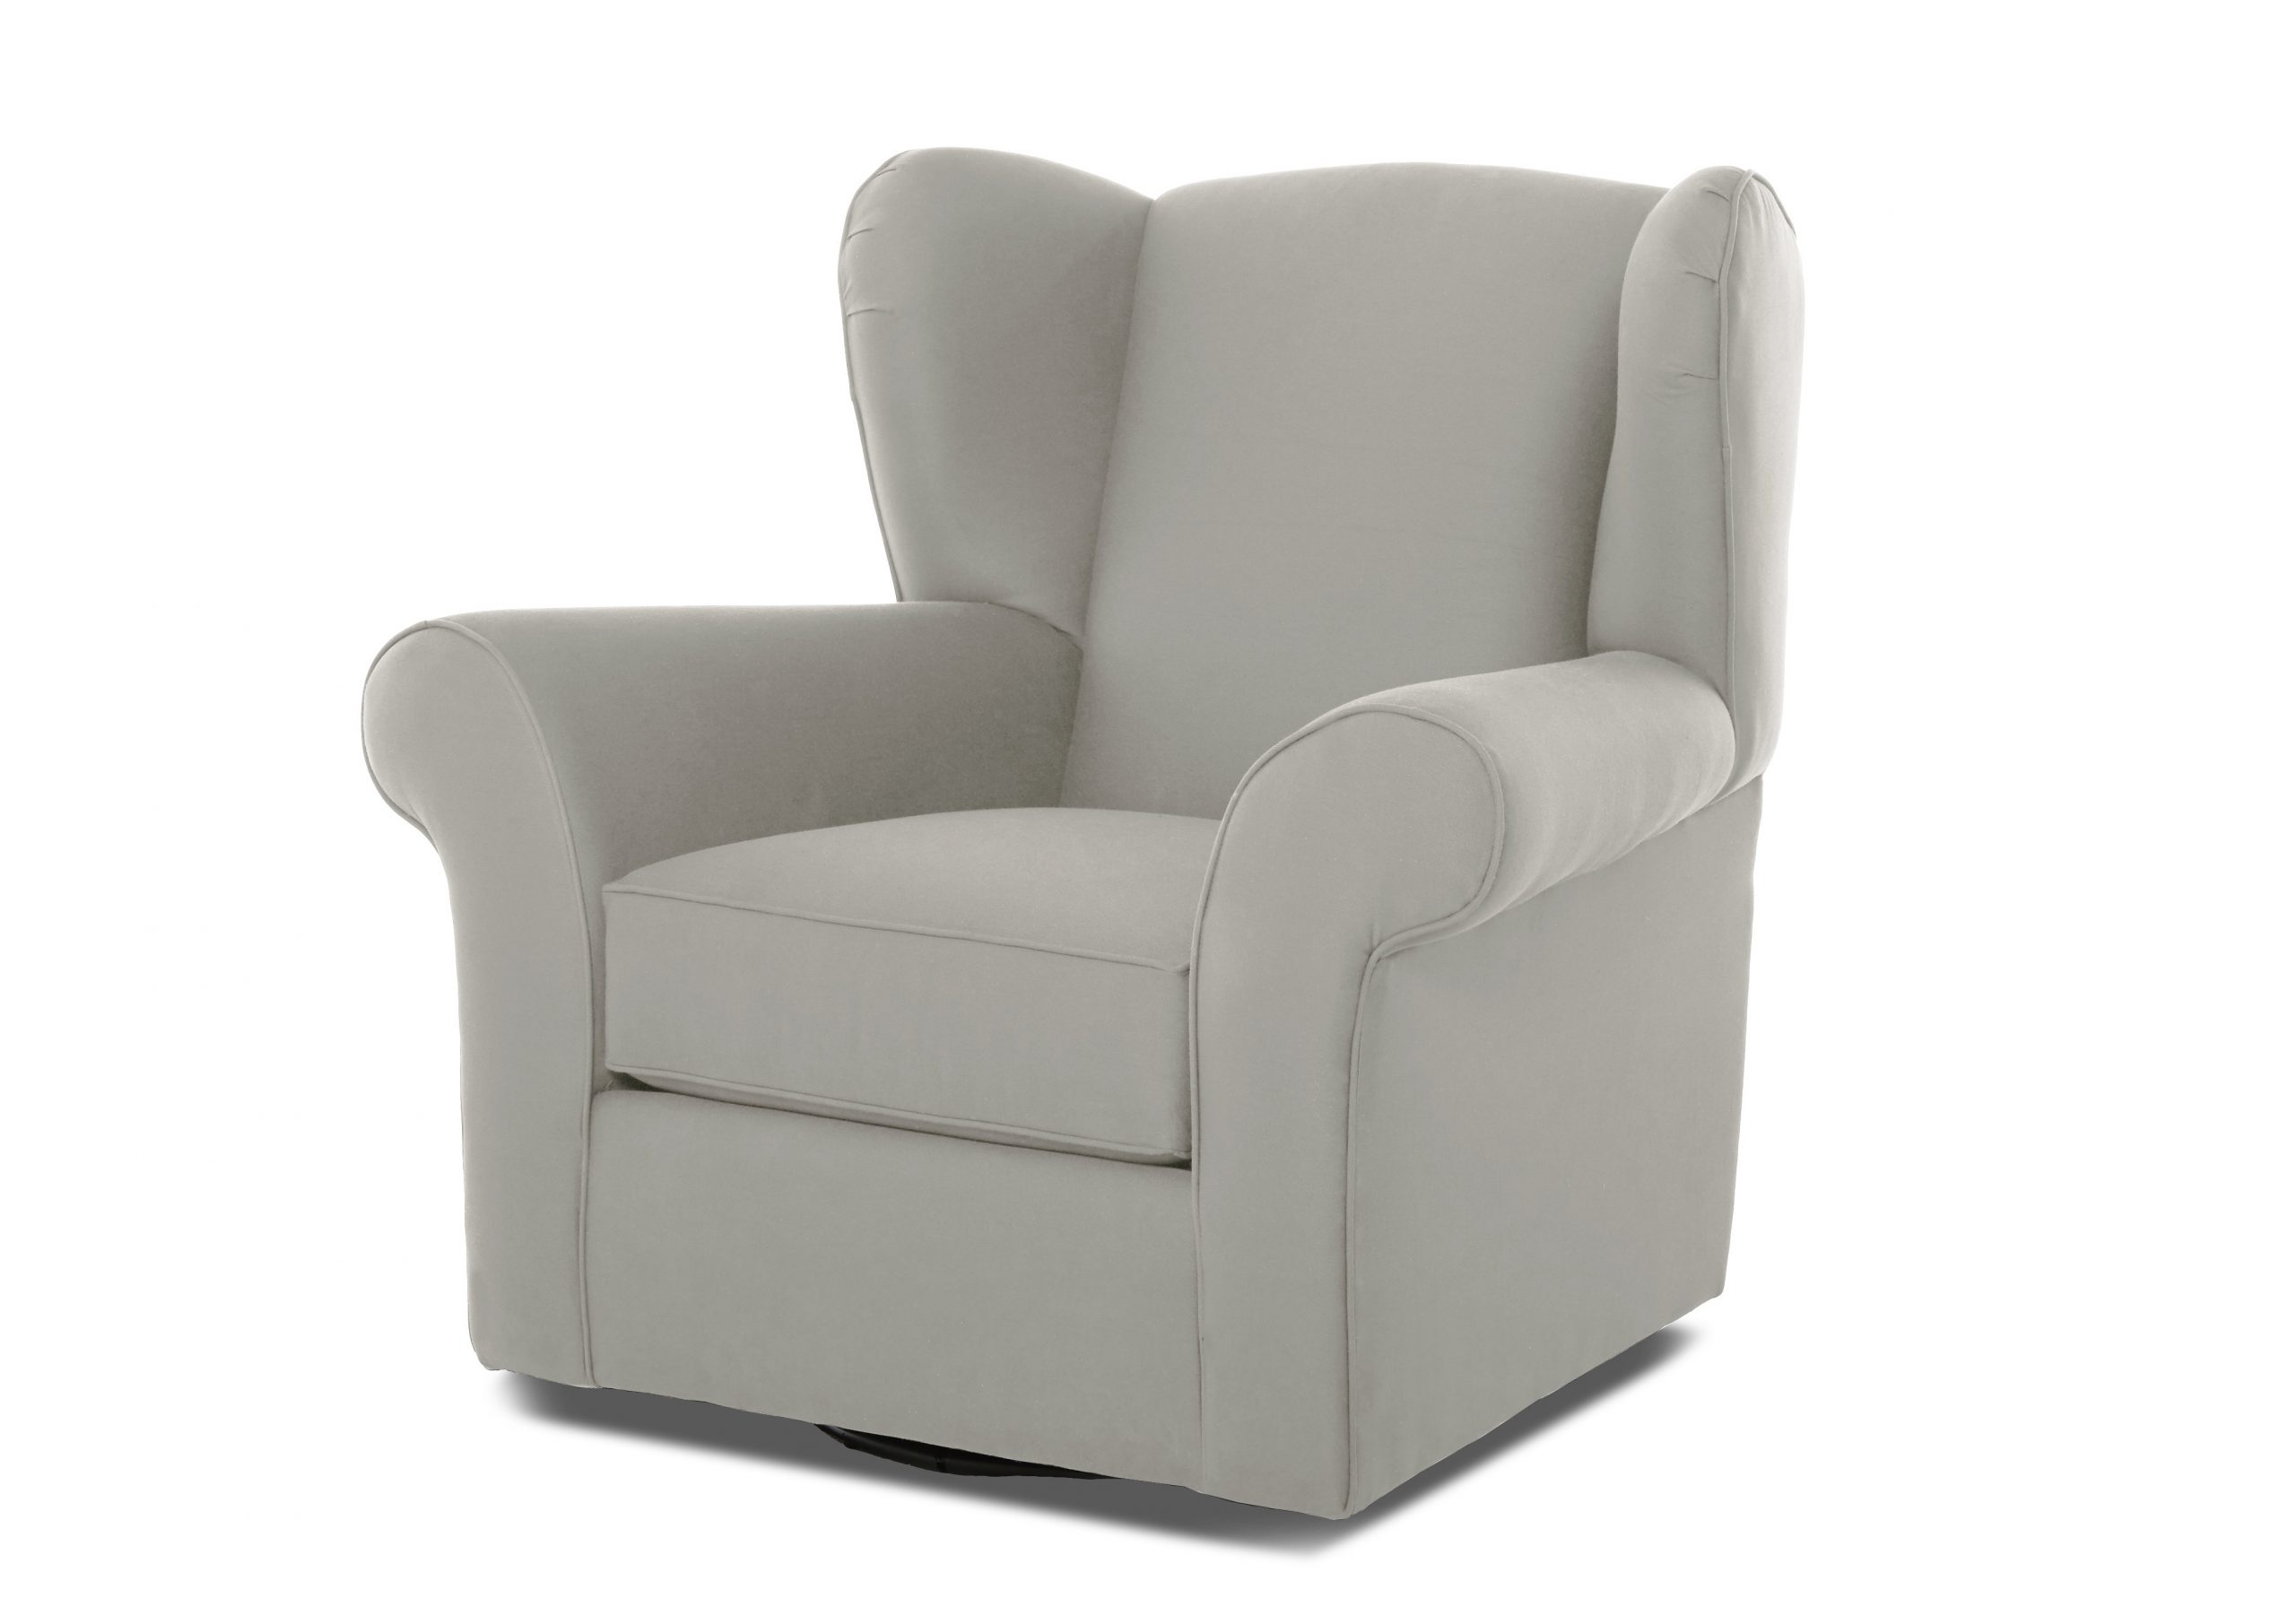 Katrina Beige Swivel Glider Chairs